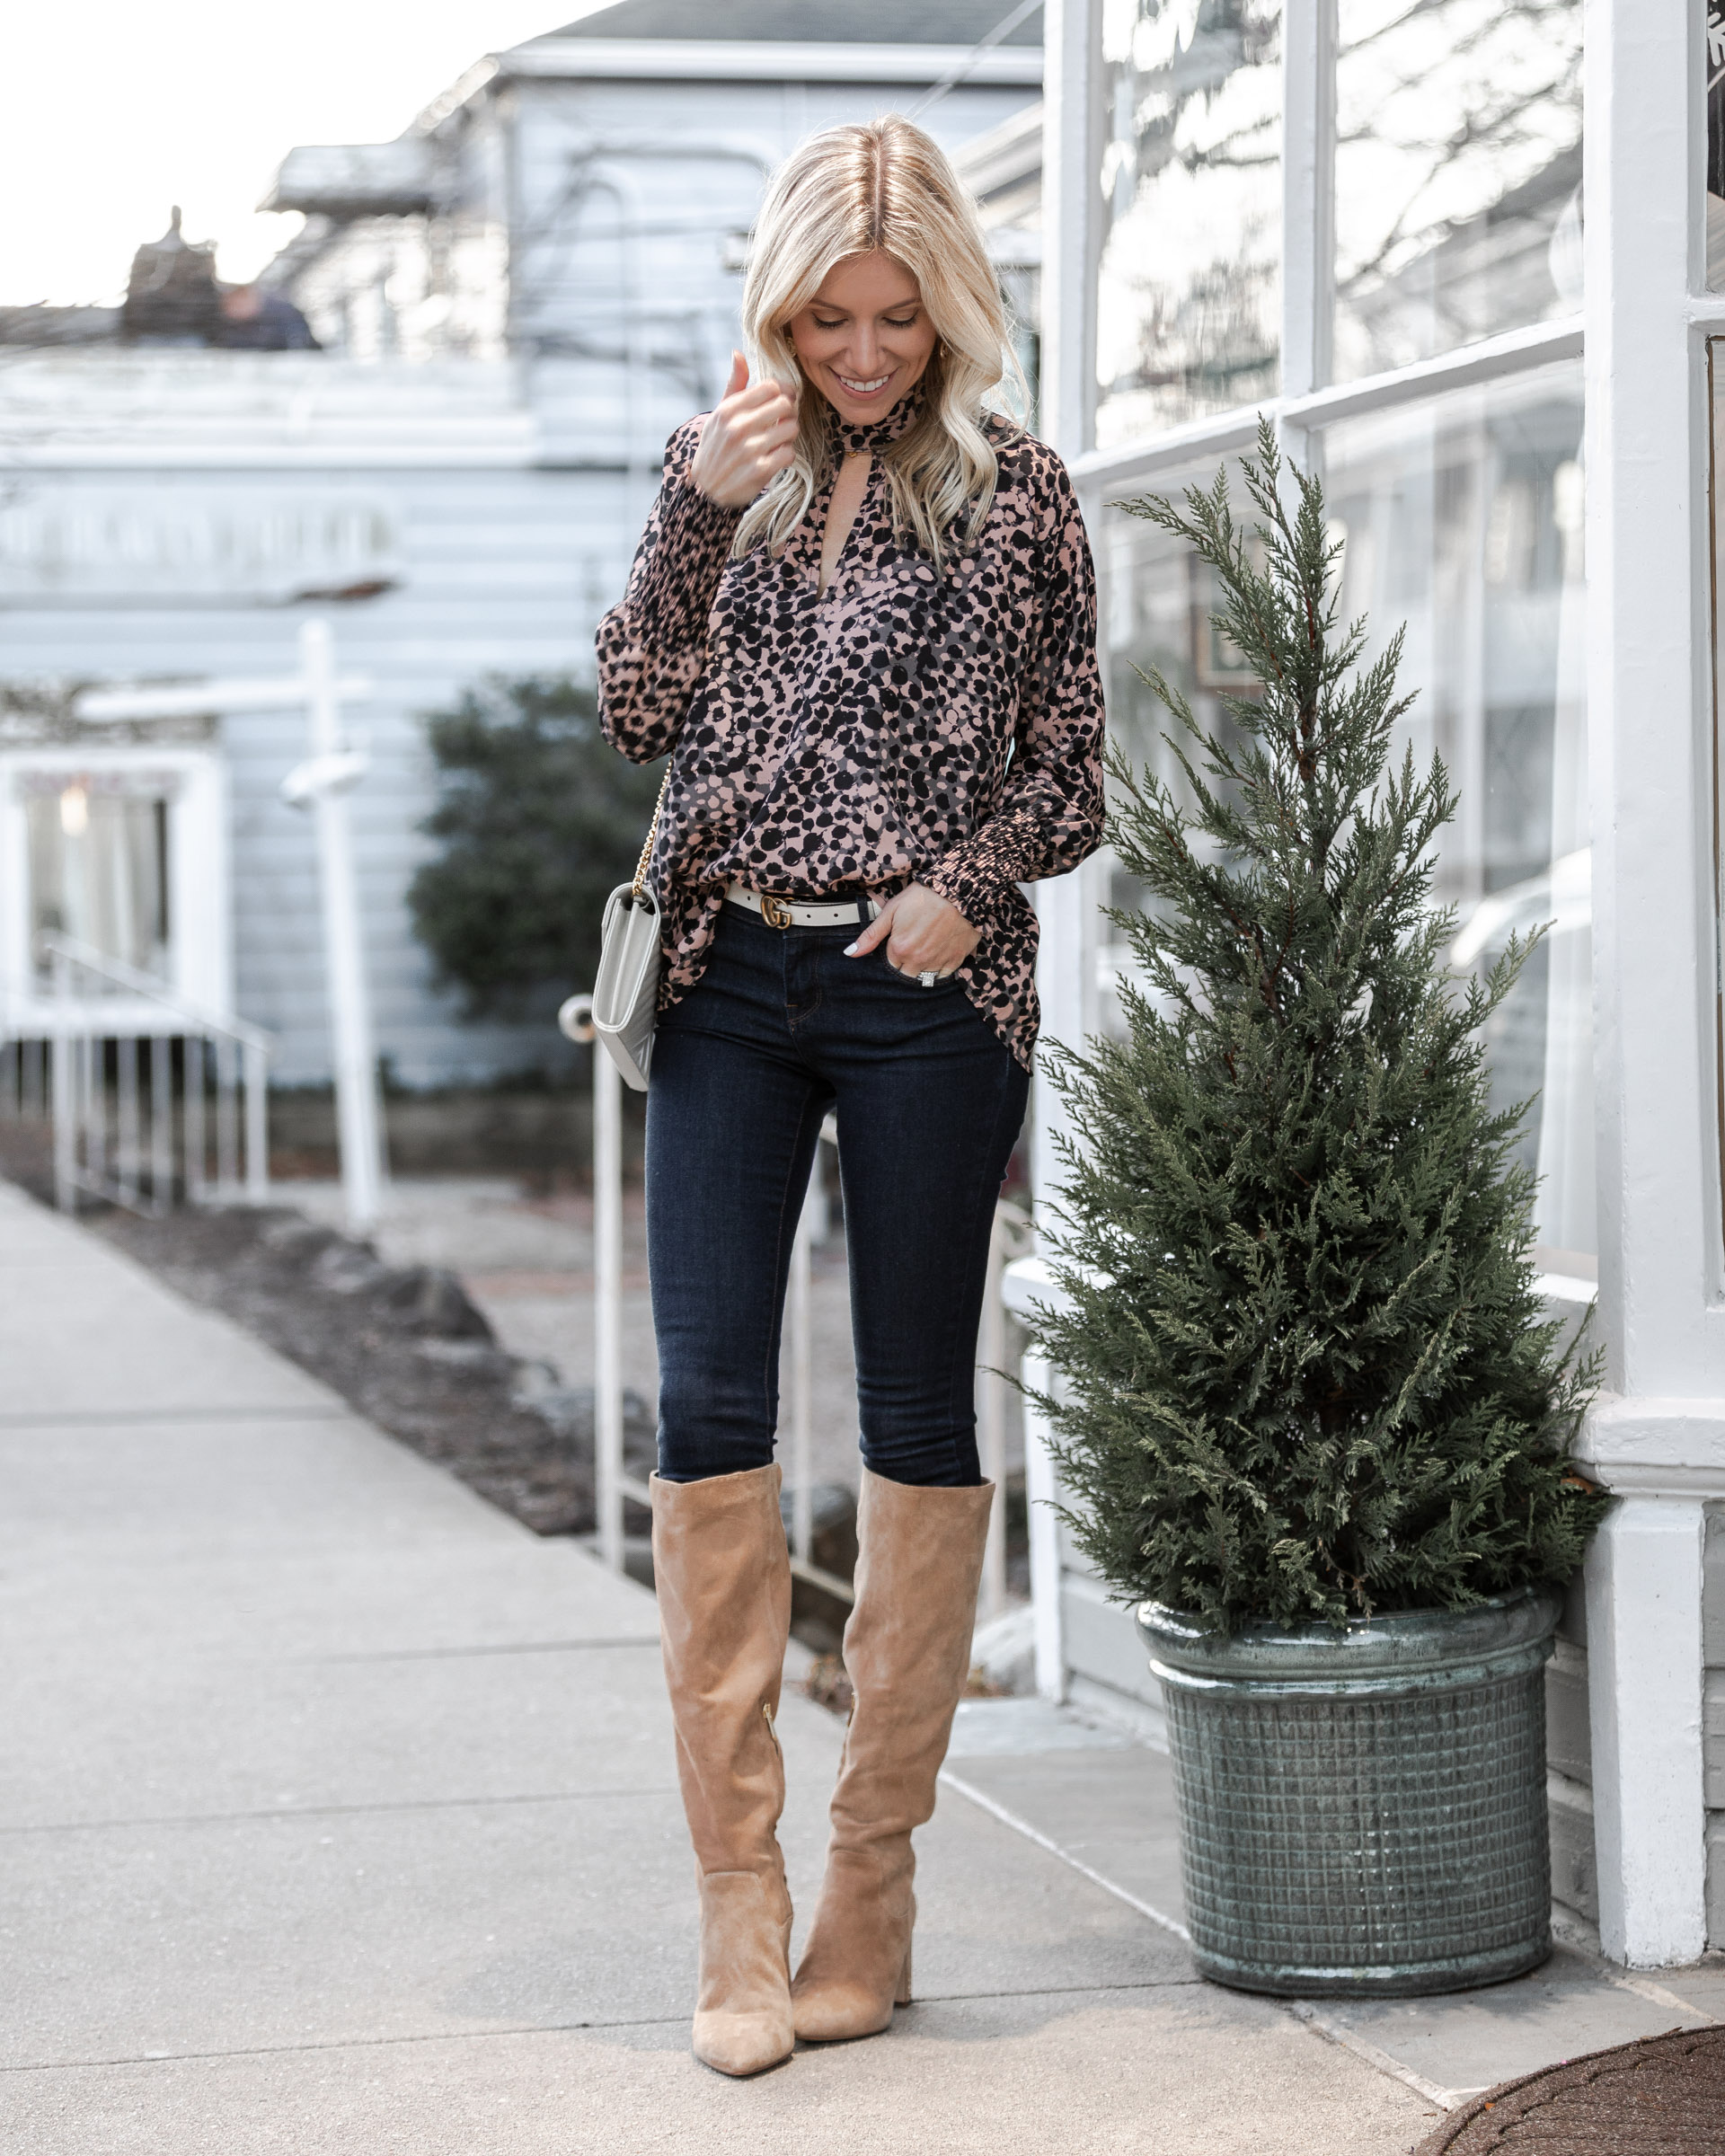 cutout-top-and-over-the-knee-boots-the-glamorous-gal